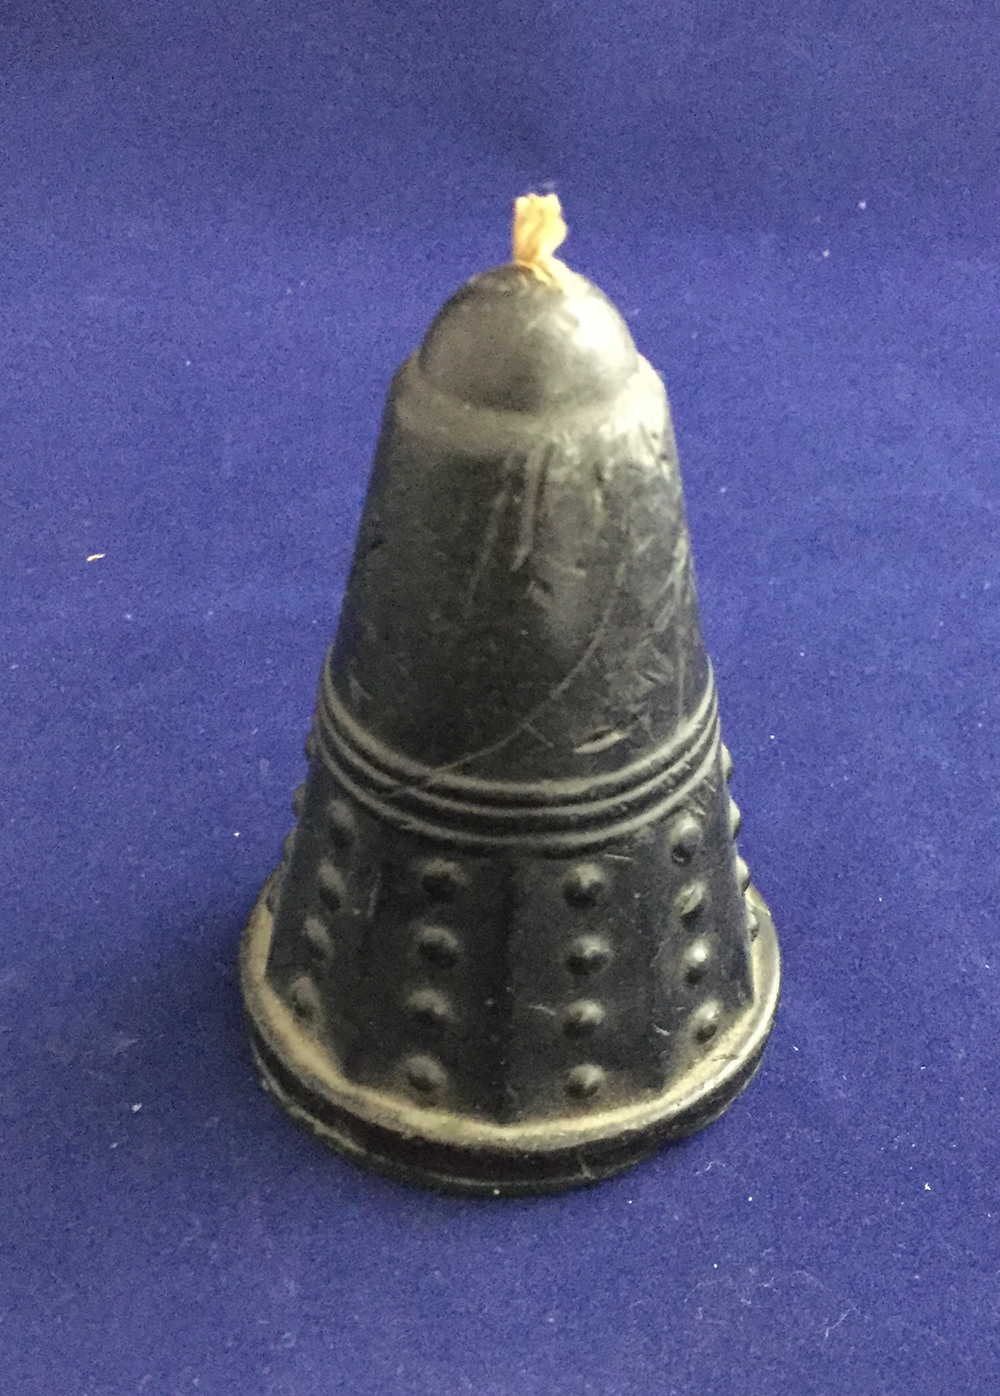 Dalek candle (spherical globes suggest this is not cast from a Hi-Ball ice cream container; however, uncertain whether this is the licensed candle from Candle Art Ltd.)